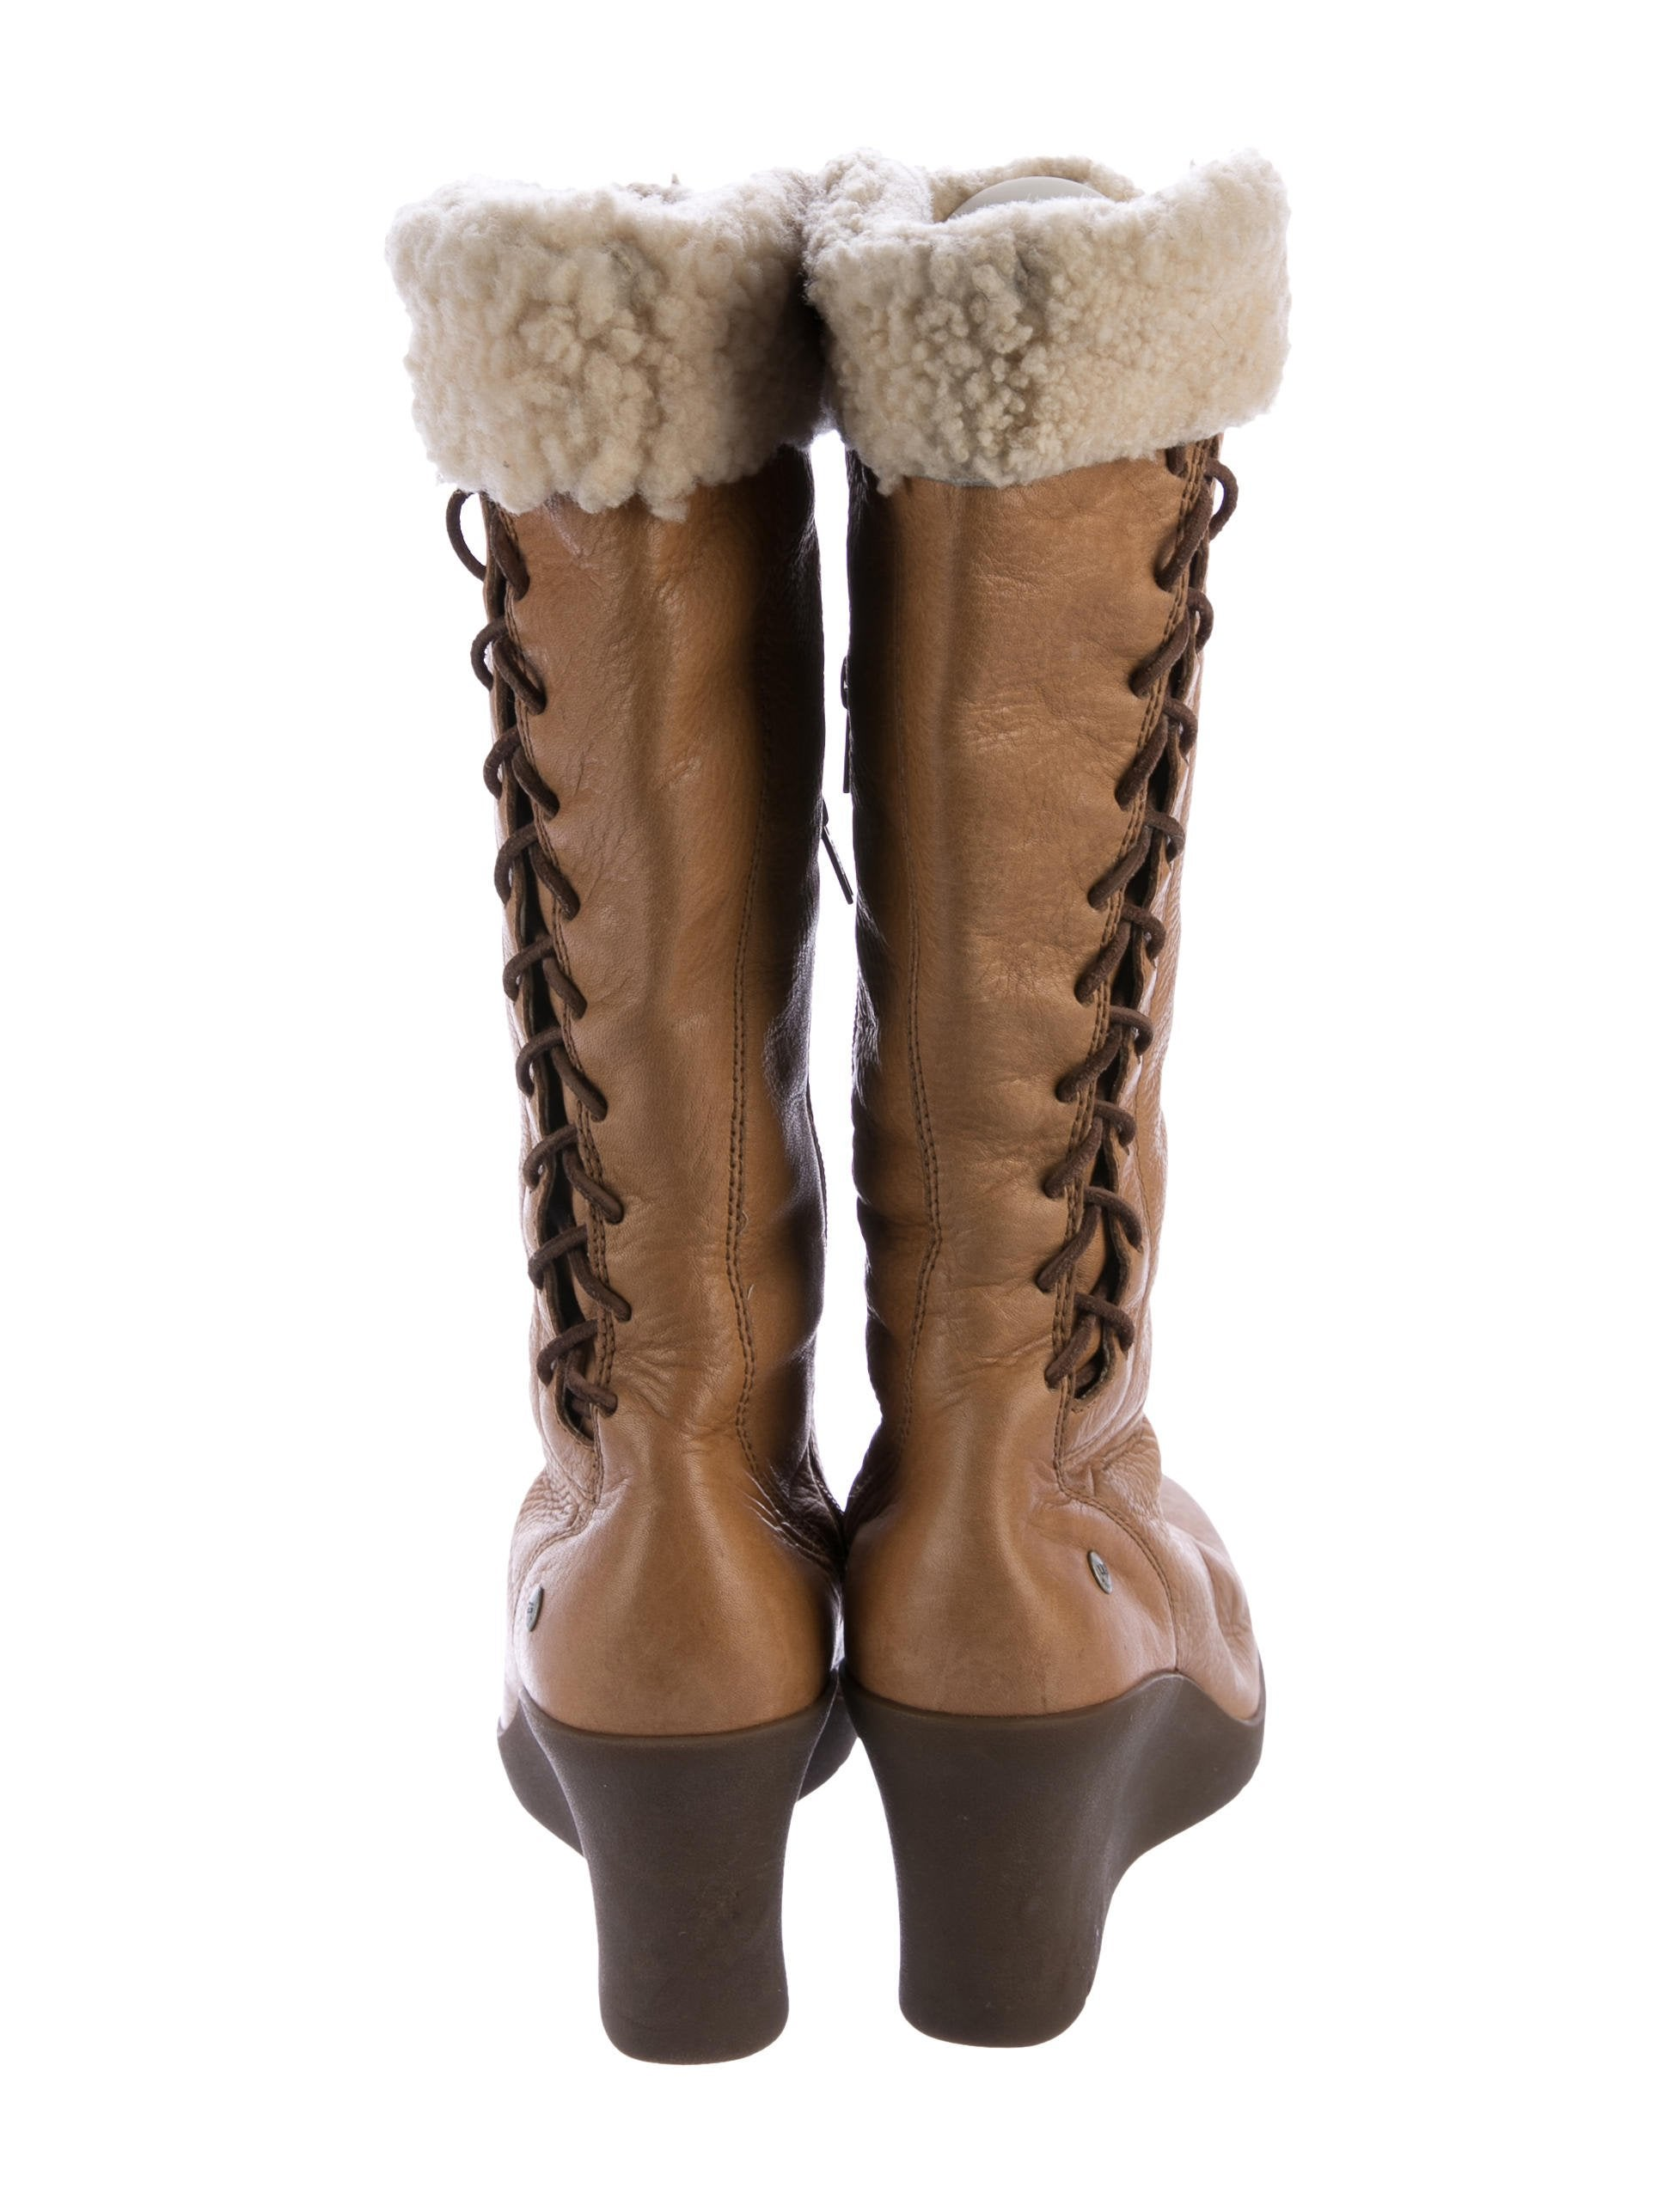 Ugg Australia Leather Knee High Wedge Boots Shoes